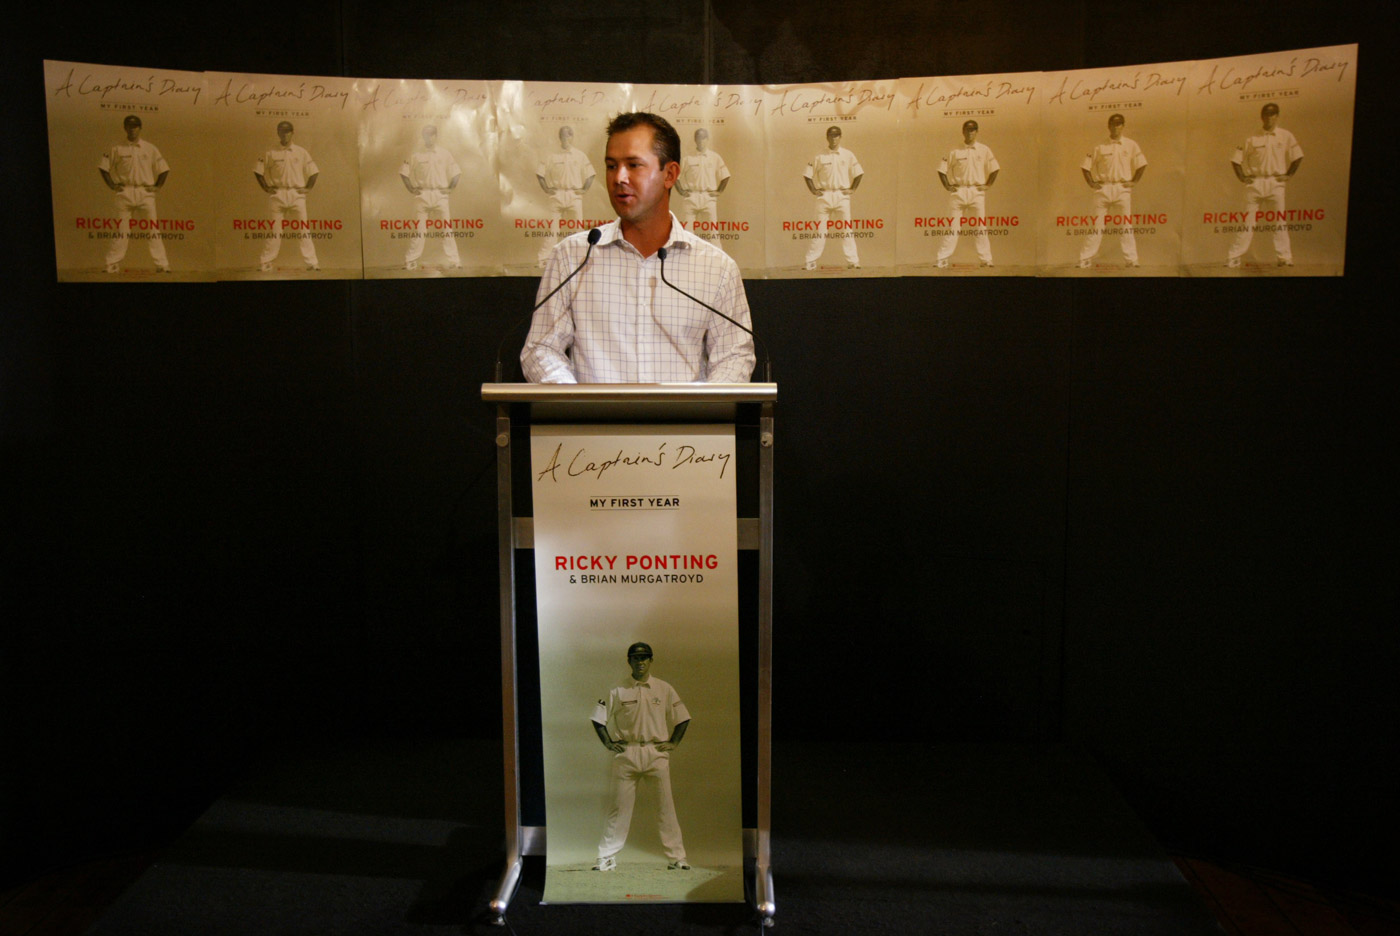 Ricky Ponting continued the tradition of captains' diaries that Steve Waugh had turned into a bestselling business